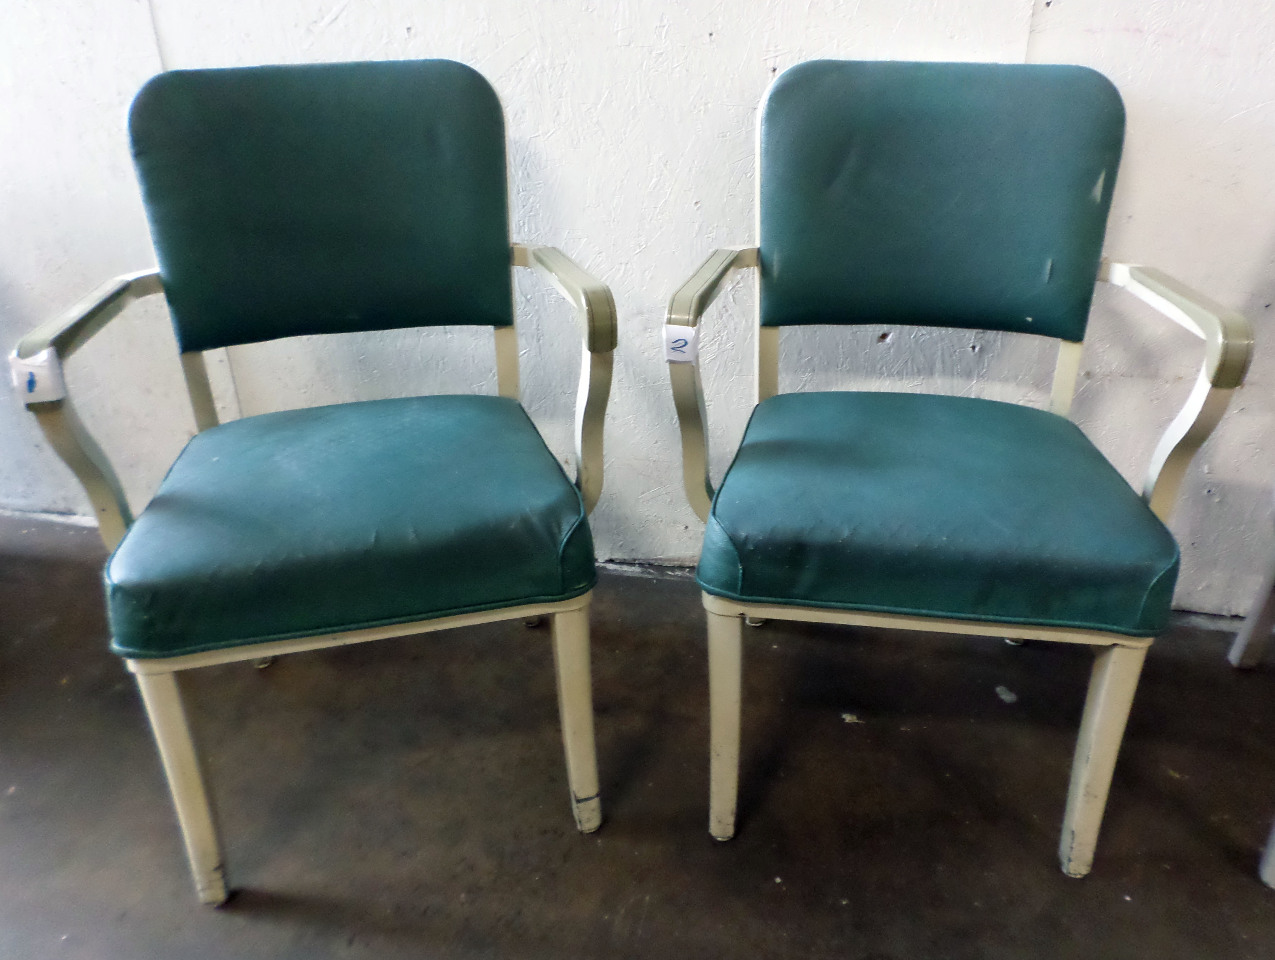 steelcase vintage chair how to make back covers for weddings mid century modern chairs ebay